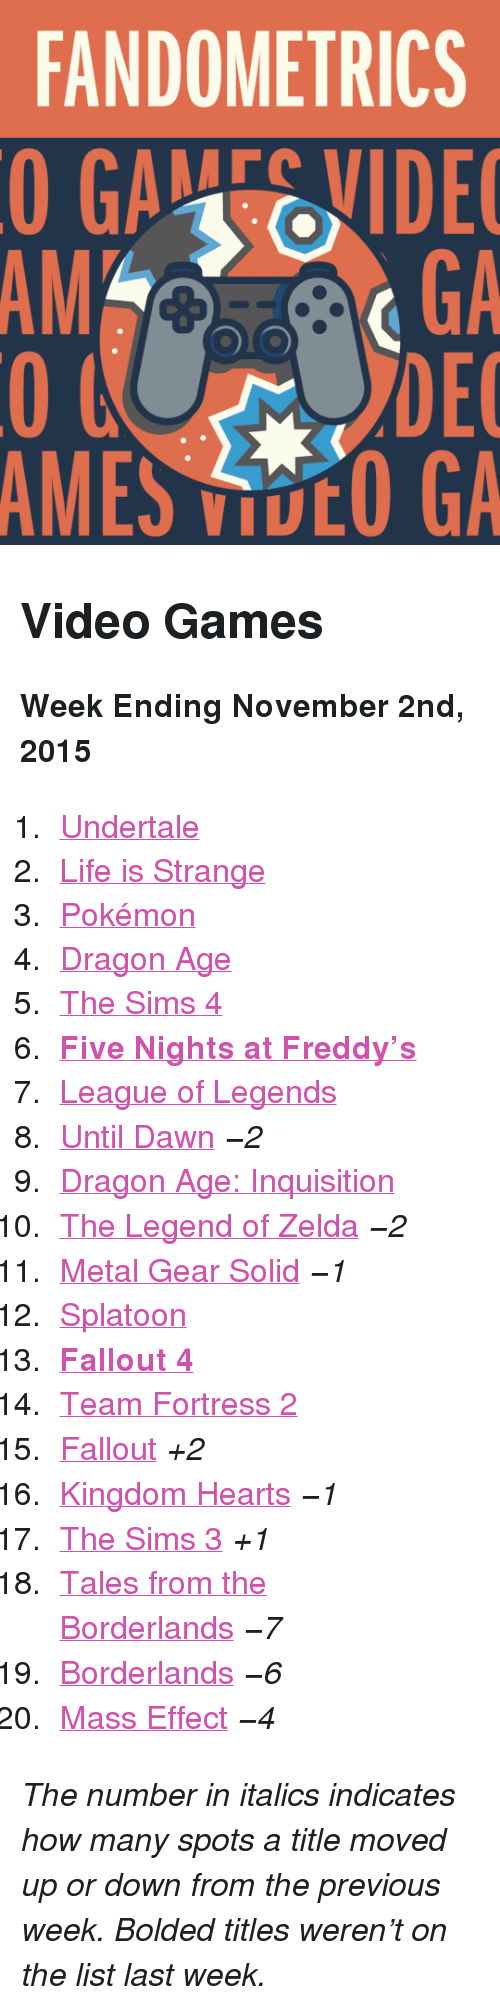 "Five Nights: FANDOMETRICS  GAEVIDE  GA  DEC  AMES VOO GA  AM <h2>Video Games</h2><p><b>Week Ending November 2nd, 2015</b></p><ol><li><a href=""http://www.tumblr.com/search/undertale"">Undertale</a></li>  <li><a href=""http://www.tumblr.com/search/life%20is%20strange"">Life is Strange</a></li>  <li><a href=""http://www.tumblr.com/search/pokemon"">Pokémon</a></li>  <li><a href=""http://www.tumblr.com/search/dragon%20age"">Dragon Age</a></li>  <li><a href=""http://www.tumblr.com/search/sims%204"">The Sims 4</a></li>  <li><a href=""http://www.tumblr.com/search/five%20nights%20at%20freddy's""><b>Five Nights at Freddy&rsquo;s</b></a></li>  <li><a href=""http://www.tumblr.com/search/league%20of%20legends"">League of Legends</a></li>  <li><a href=""http://www.tumblr.com/search/until%20dawn"">Until Dawn</a> <i>−2</i></li>  <li><a href=""http://www.tumblr.com/search/dragon%20age%20inquisition"">Dragon Age: Inquisition</a></li>  <li><a href=""http://www.tumblr.com/search/legend%20of%20zelda"">The Legend of Zelda</a> <i>−2</i></li>  <li><a href=""http://www.tumblr.com/search/metal%20gear%20solid"">Metal Gear Solid</a> <i>−1</i></li>  <li><a href=""http://www.tumblr.com/search/splatoon"">Splatoon</a></li>  <li><a href=""http://www.tumblr.com/search/fallout%204""><b>Fallout 4</b></a></li>  <li><a href=""http://www.tumblr.com/search/tf2"">Team Fortress 2</a></li>  <li><a href=""http://www.tumblr.com/search/fallout"">Fallout</a> <i>+2</i></li>  <li><a href=""http://www.tumblr.com/search/kingdom%20hearts"">Kingdom Hearts</a> <i>−1</i></li>  <li><a href=""http://www.tumblr.com/search/sims%203"">The Sims 3</a> <i>+1</i></li>  <li><a href=""http://www.tumblr.com/search/tales%20from%20the%20borderlands"">Tales from the Borderlands</a> <i>−7</i></li>  <li><a href=""http://www.tumblr.com/search/borderlands"">Borderlands</a> <i>−6</i></li>  <li><a href=""http://www.tumblr.com/search/mass%20effect"">Mass Effect</a> <i>−4</i></li></ol><p><i>The number in italics indicates how many spots a title moved up or down from the previous week. Bolded titles weren't on the list last week.</i></p>"